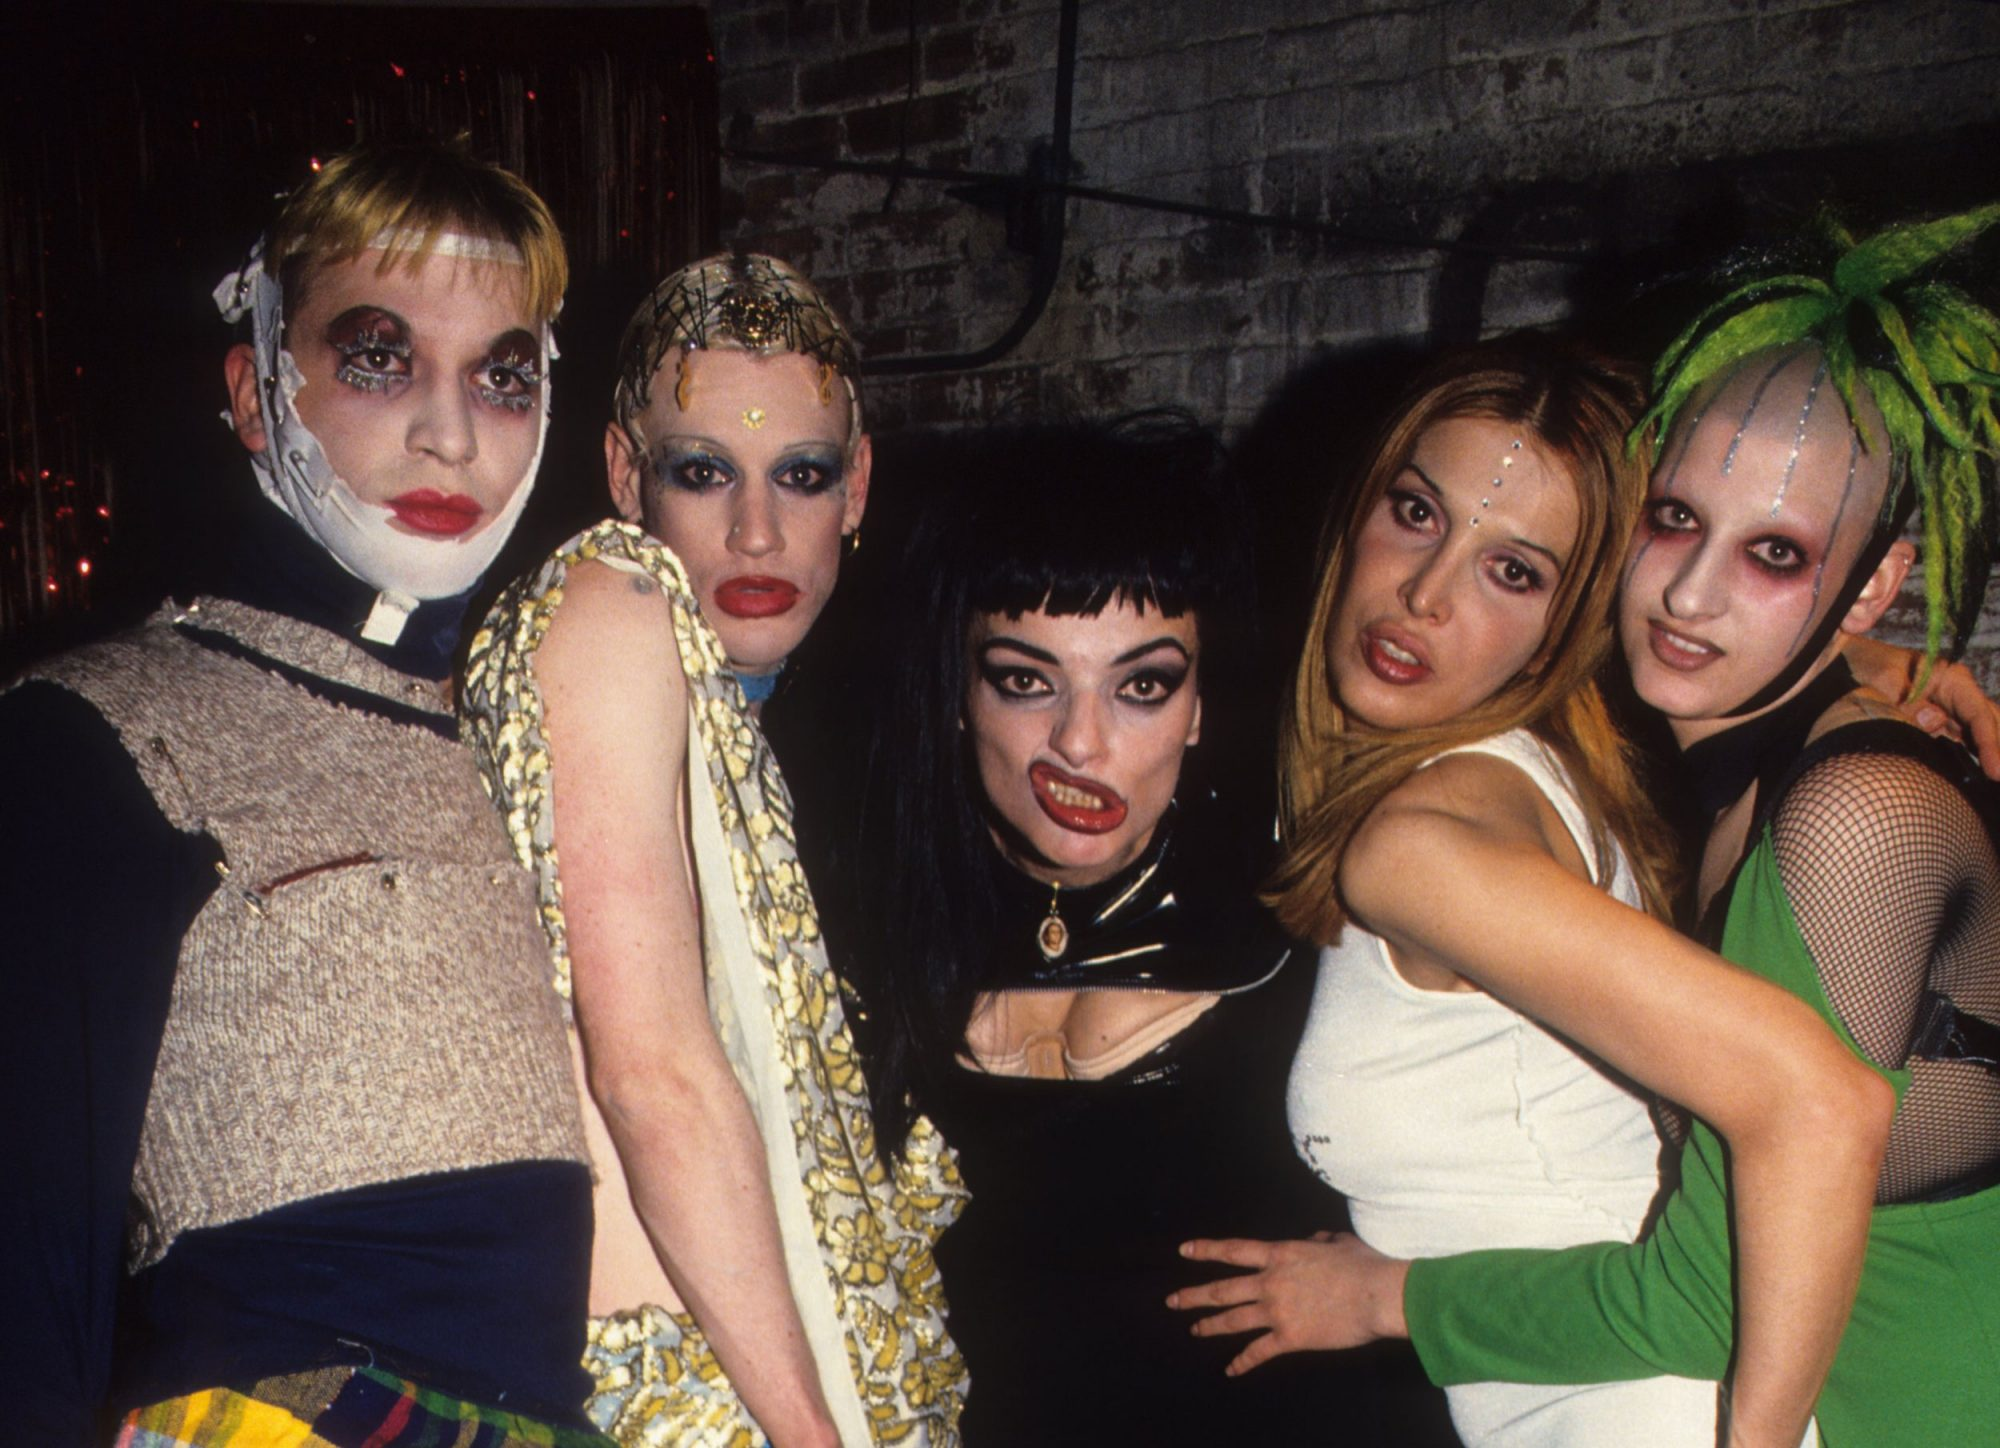 In Search of the '90s Club Kids' Lost Doughnut Party assets%2Fmessage-editor%2F1484322186550-clubkids